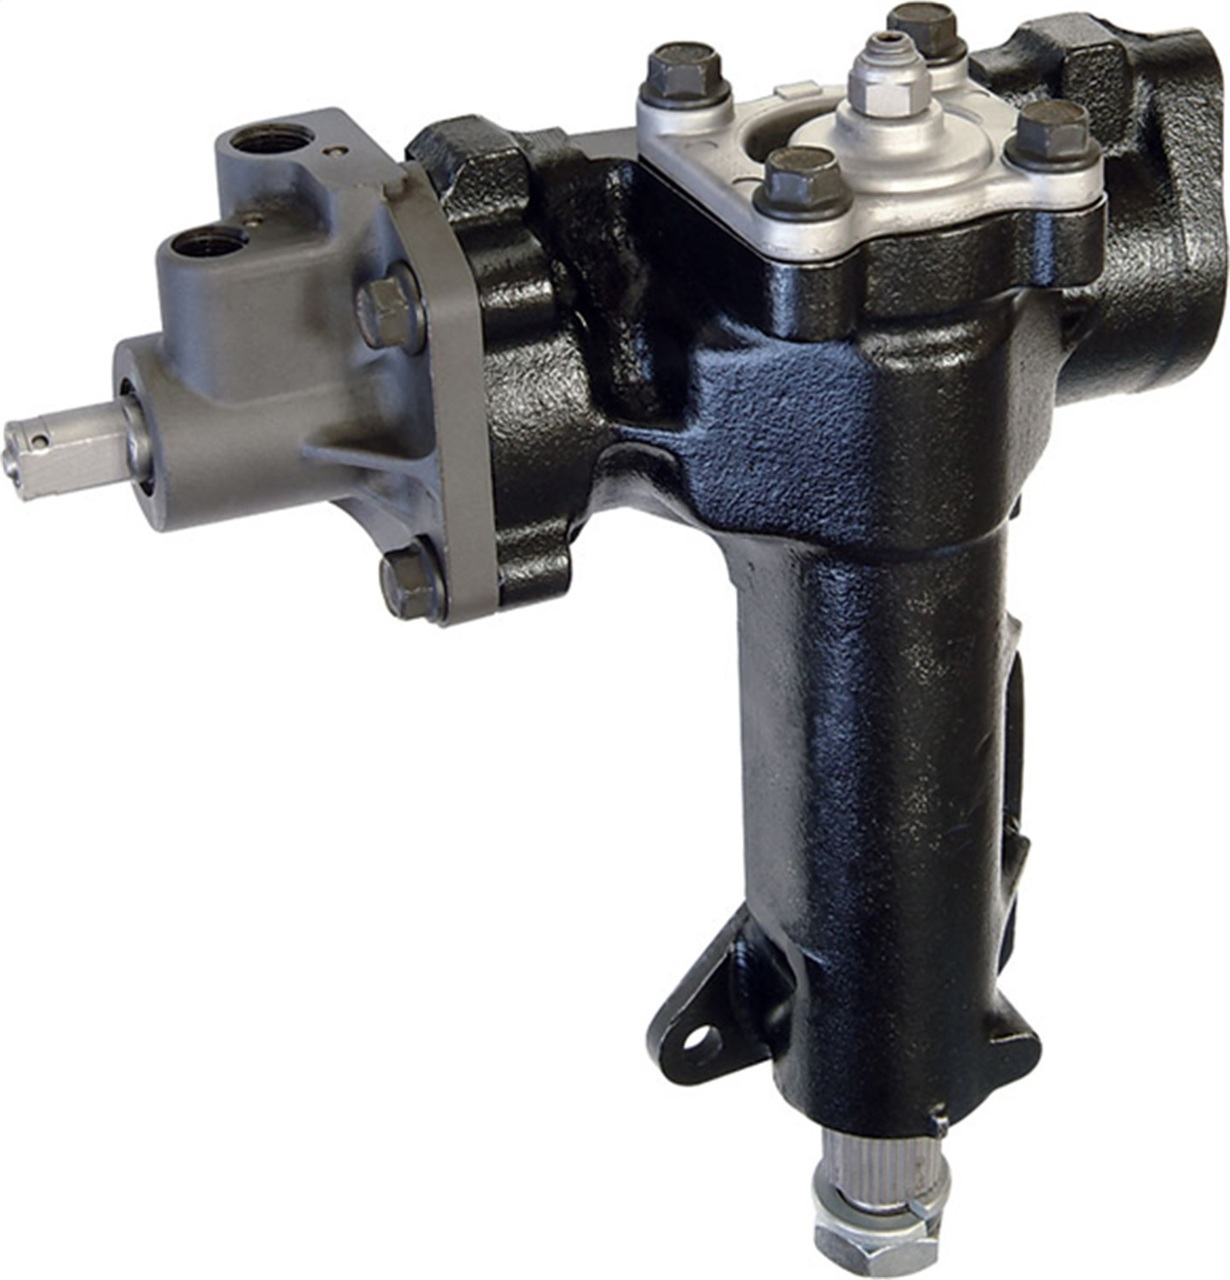 6 AN Borgeson 925121 Power Steering Fitting Stainless for Ford Box to